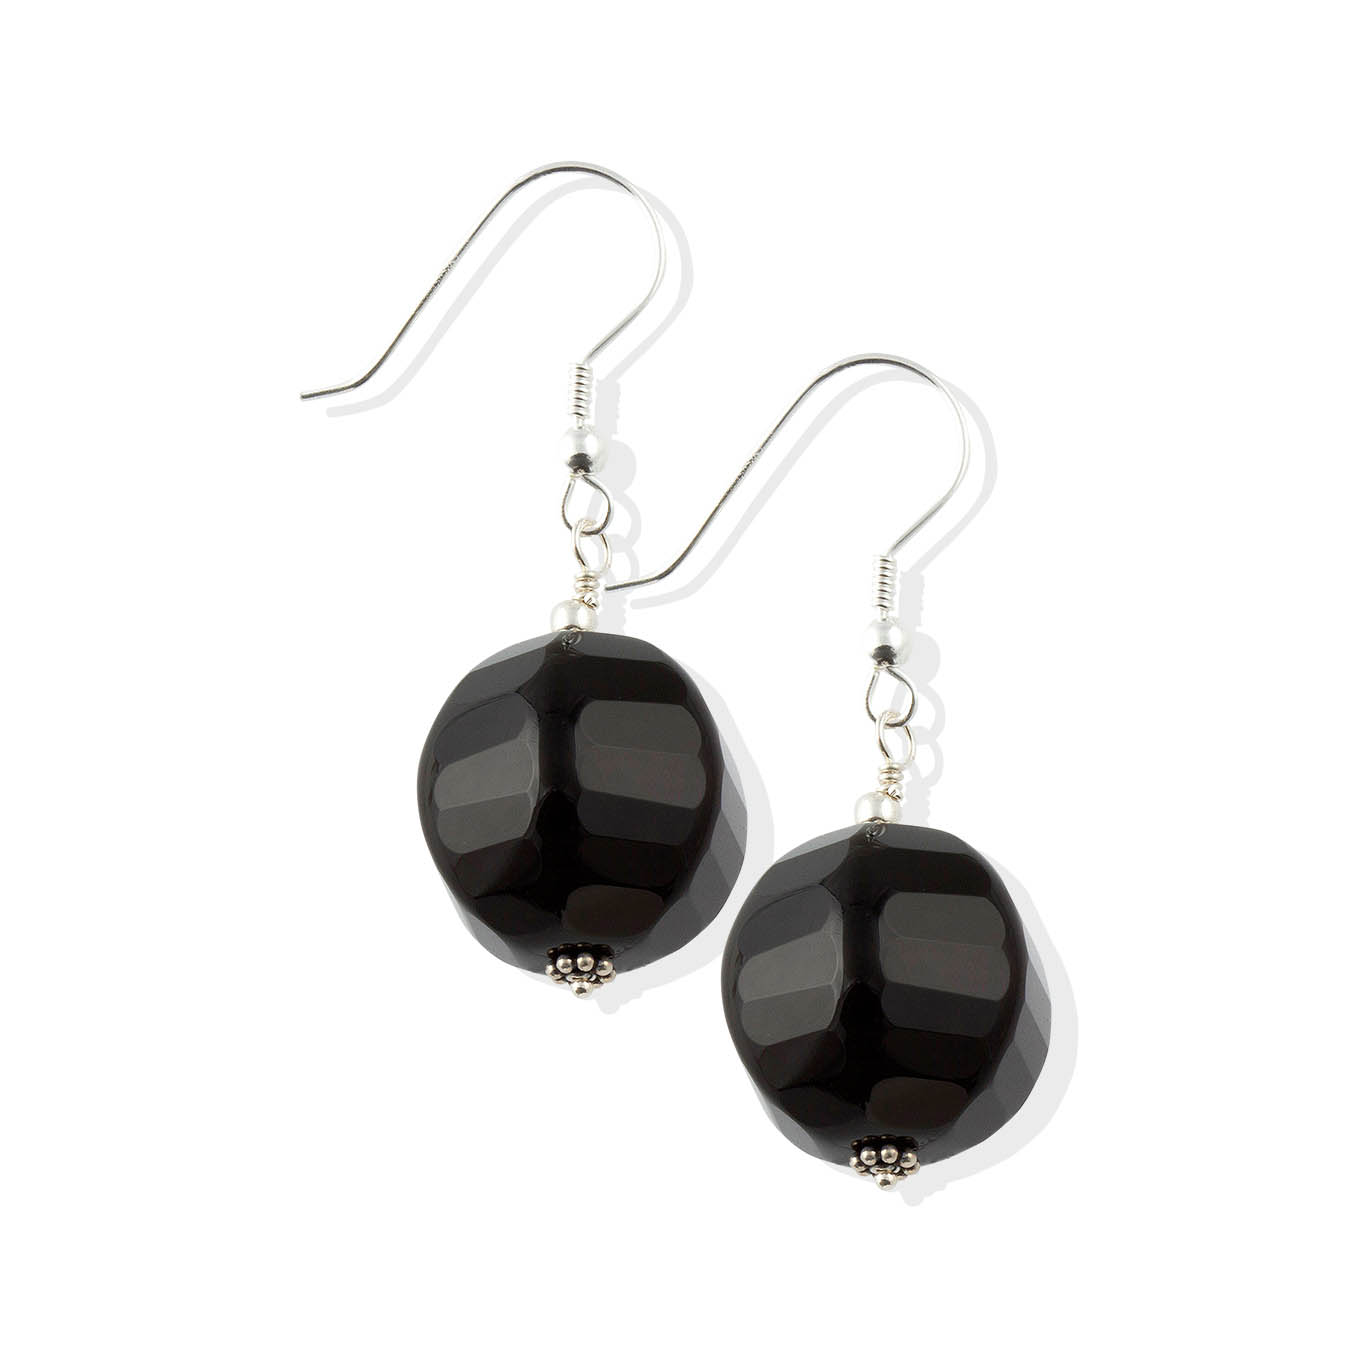 Handcrafted chunky bead jewelry made of faceted black agate and silver